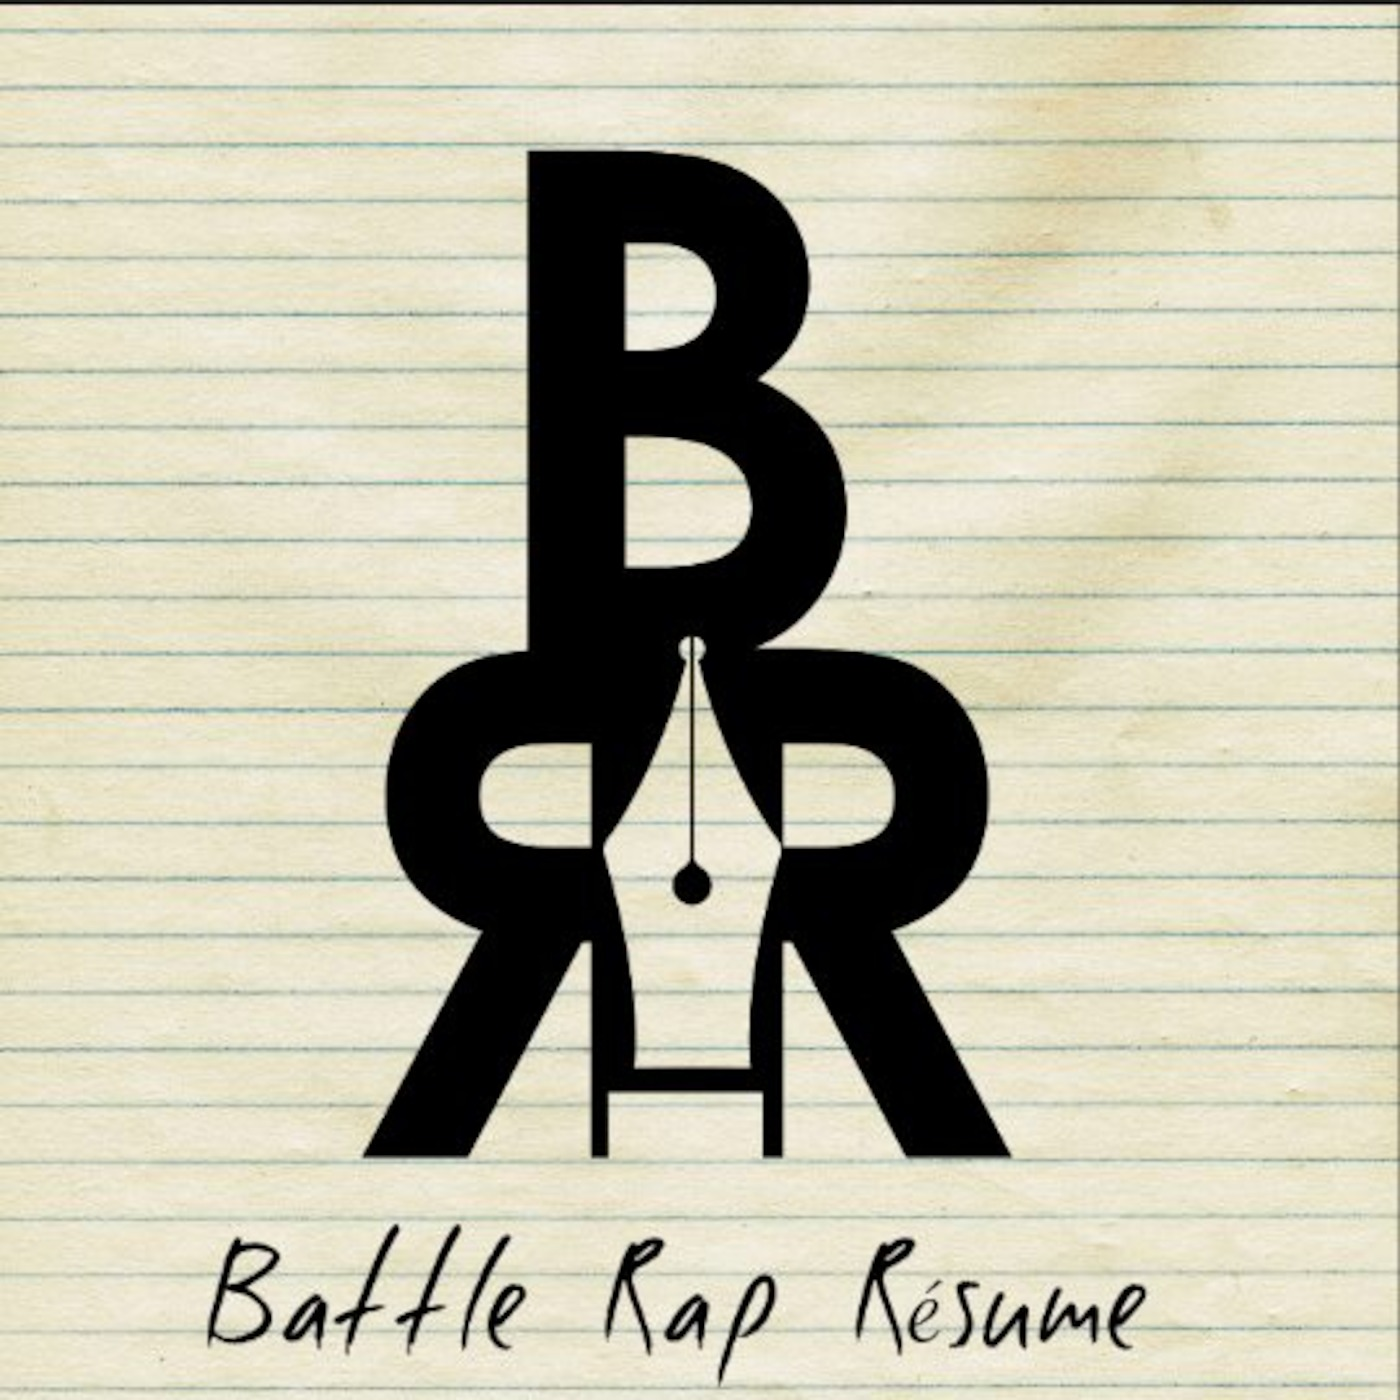 Battle Rap Resume